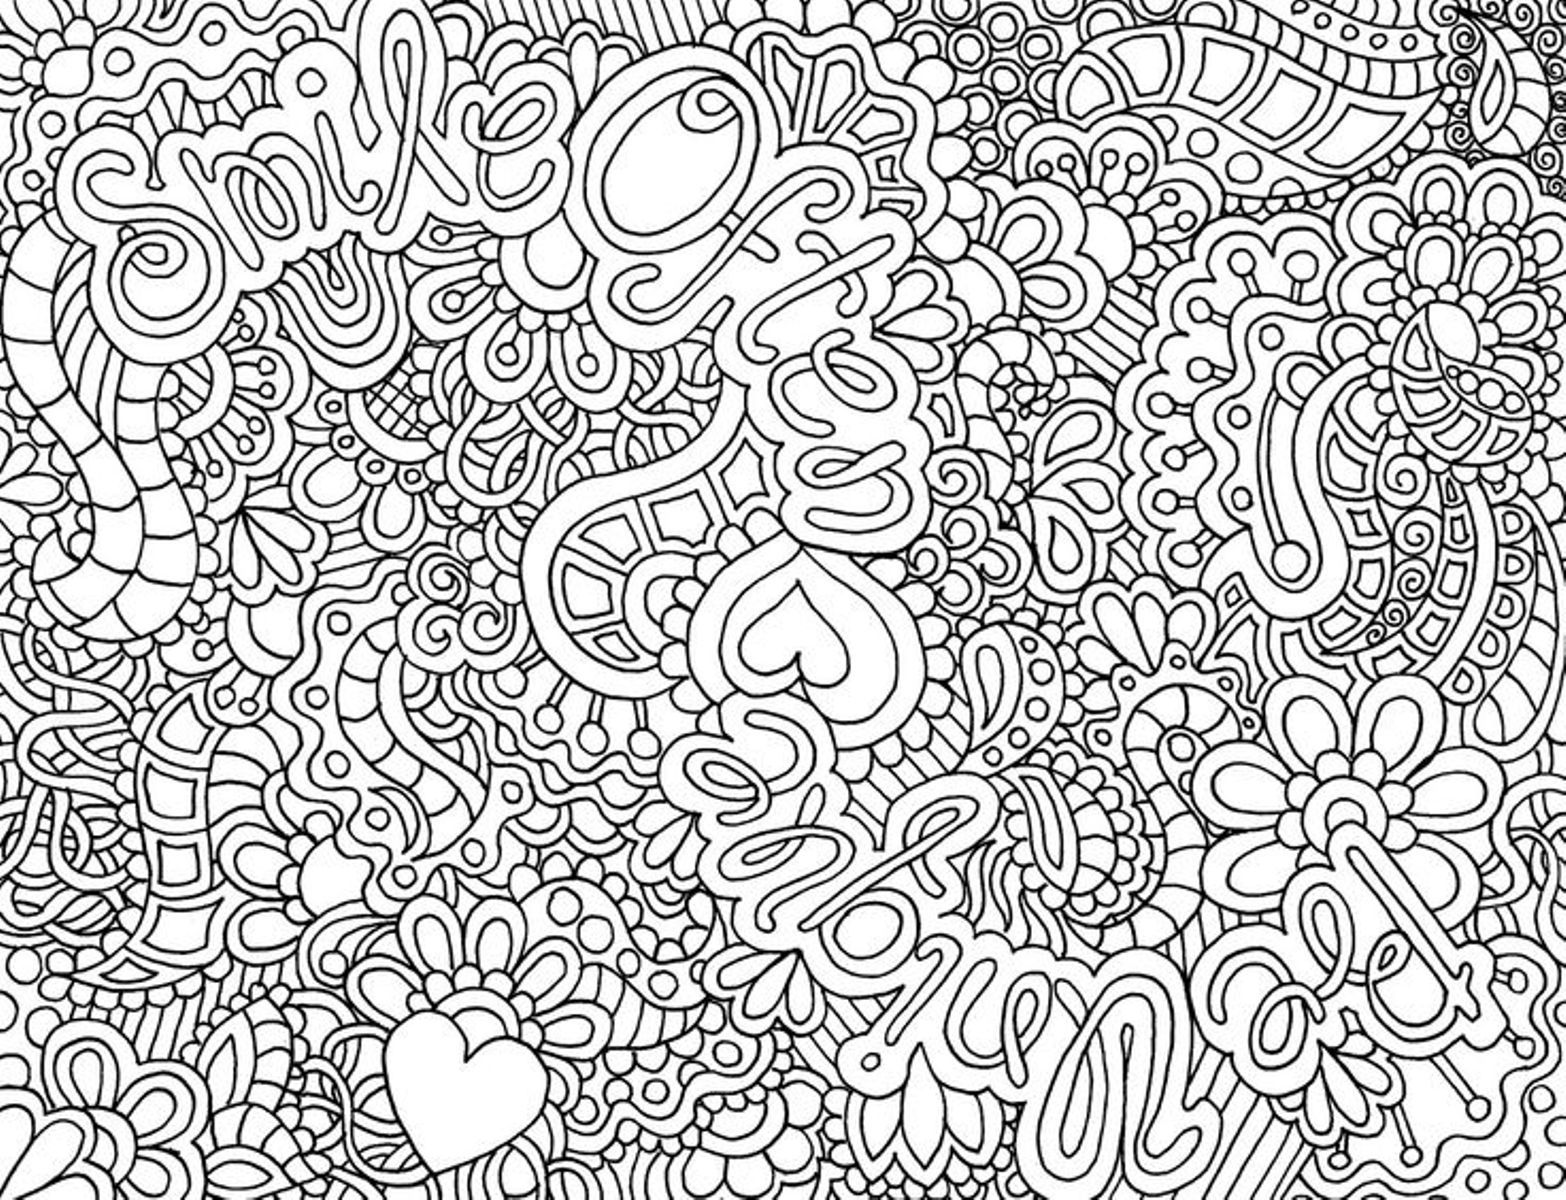 Difficult Hard Coloring Pages Printable Only Coloring Pages Abstract Coloring Pages Detailed Coloring Pages Mandala Coloring Pages